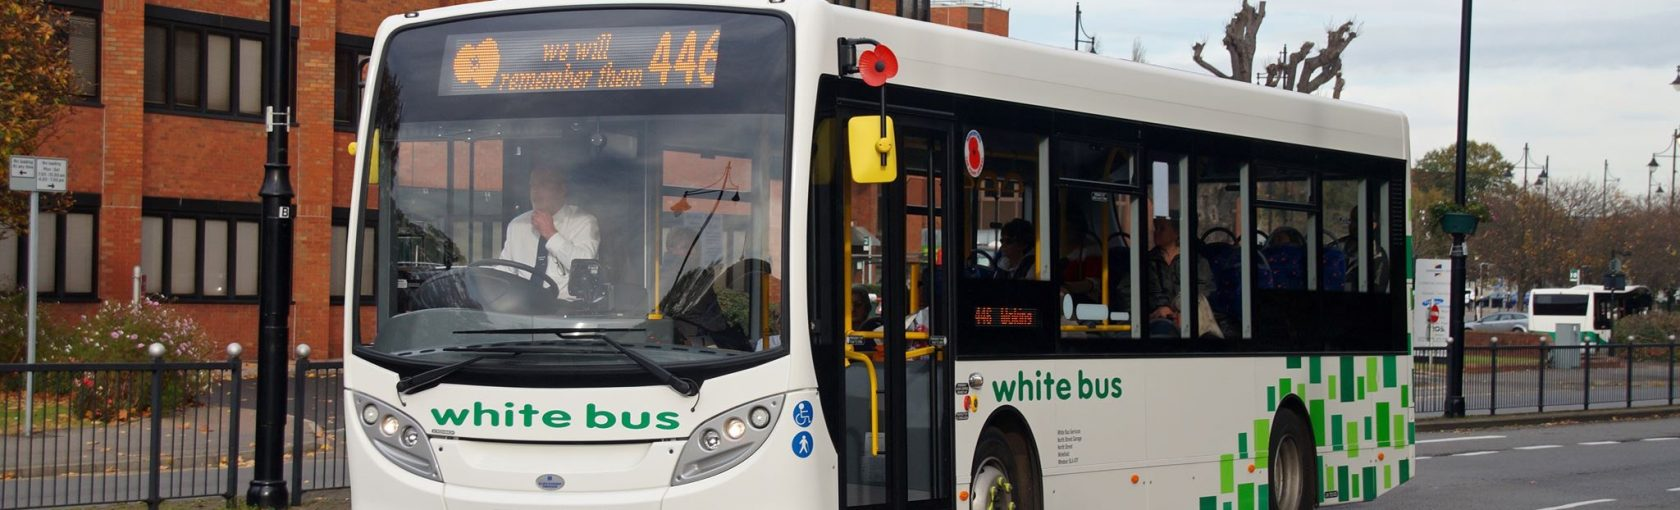 Mistral Bus & Coach deliver four new buses to White Bus Service